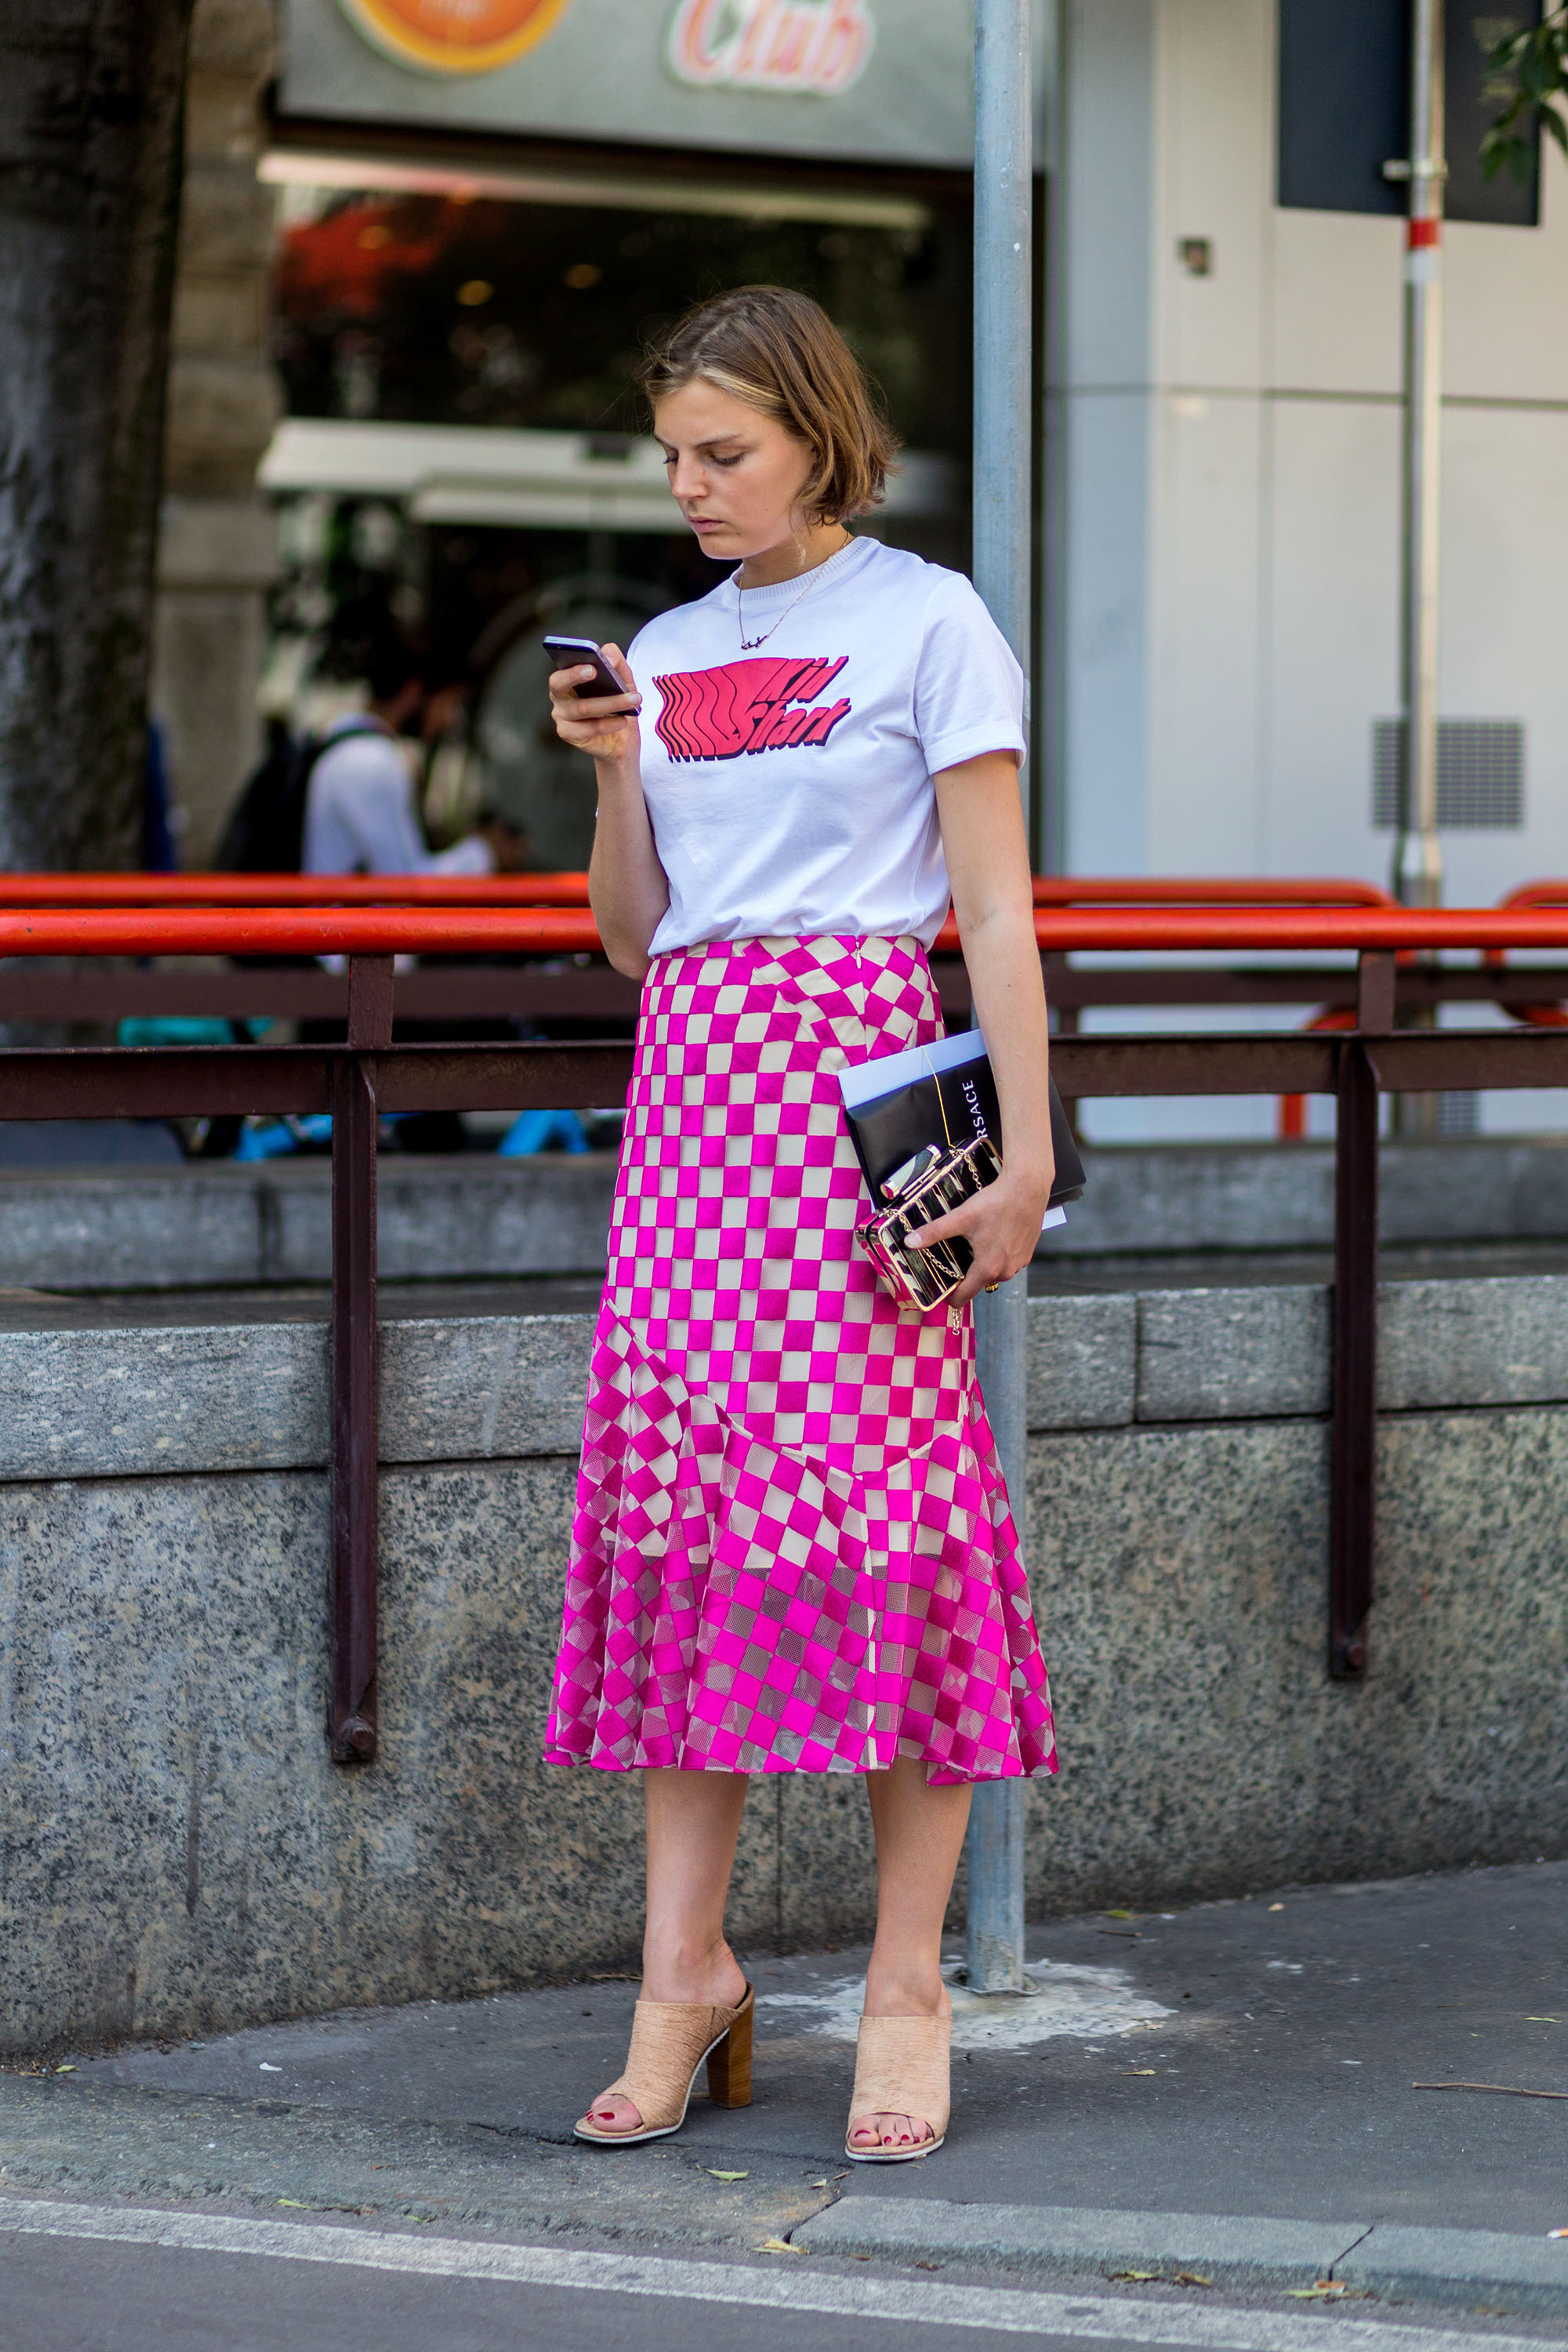 MILAN, ITALY - JUNE 18: Claire Beermann outside Jil Sander during the Milan Men's Fashion Week Spring/Summer 2017 on June 18, 2016 in Milan, Italy. (Photo by Christian Vierig/Getty Images)